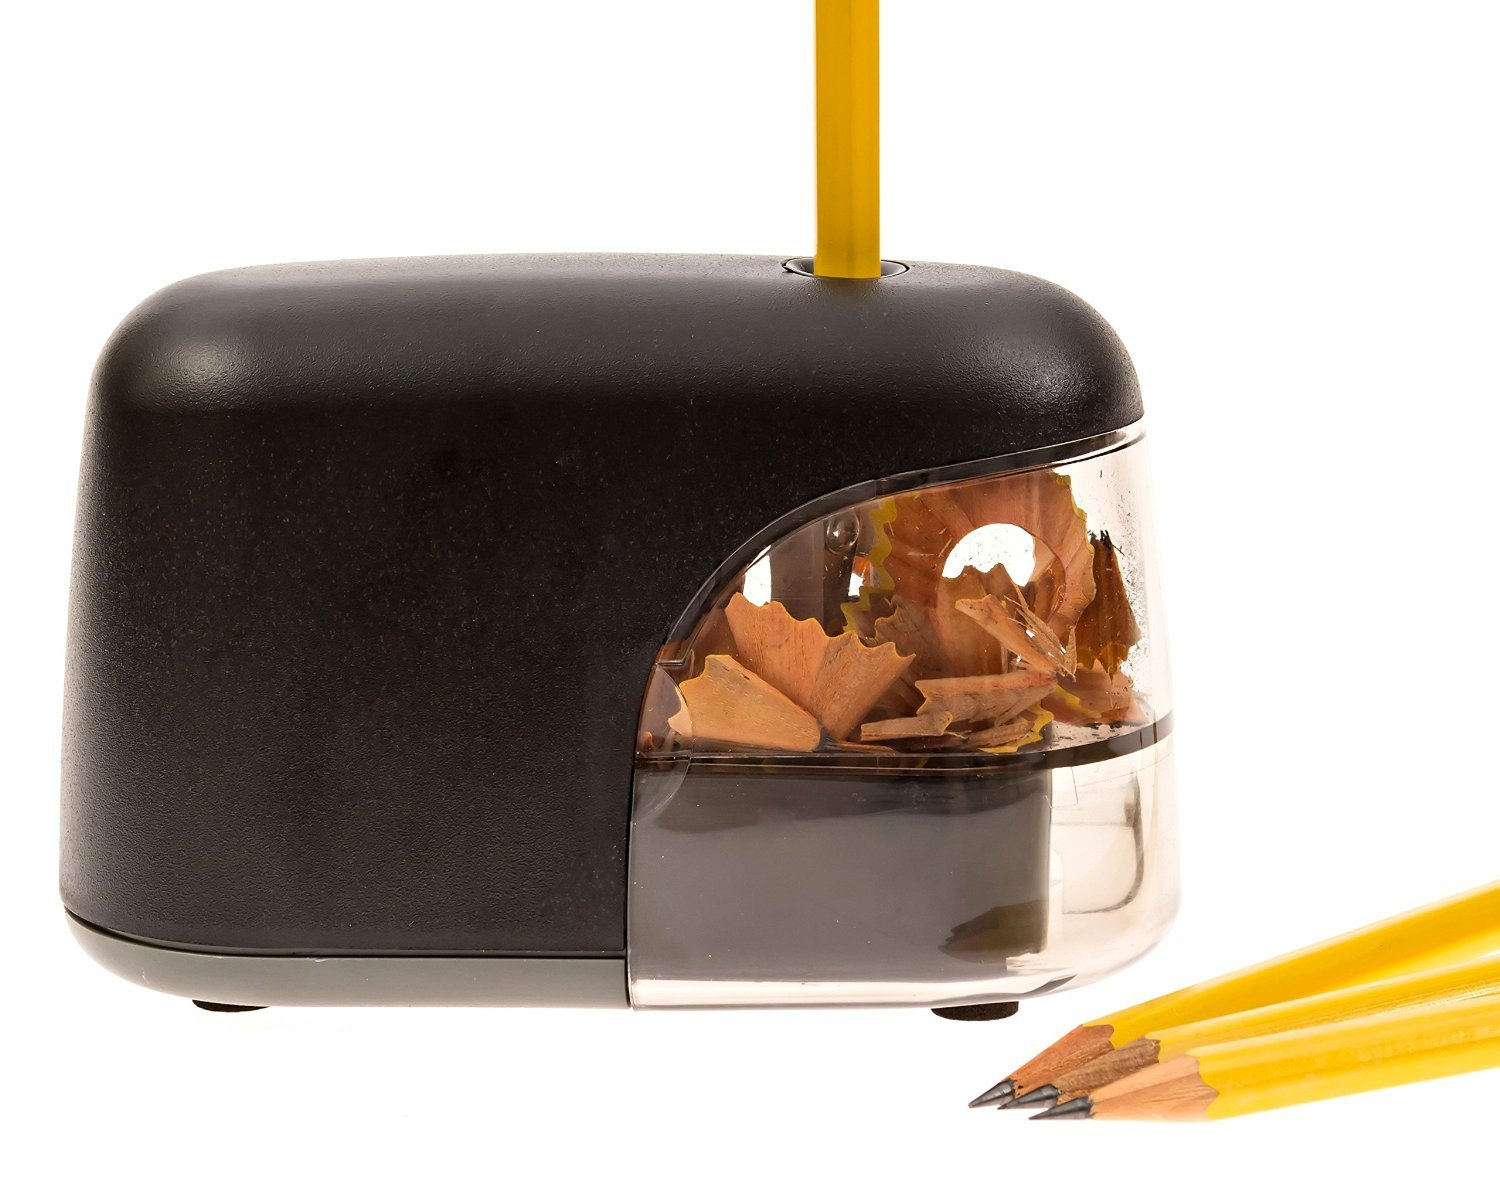 Generic Office Electric Pencil Sharpener, Compact and Portable